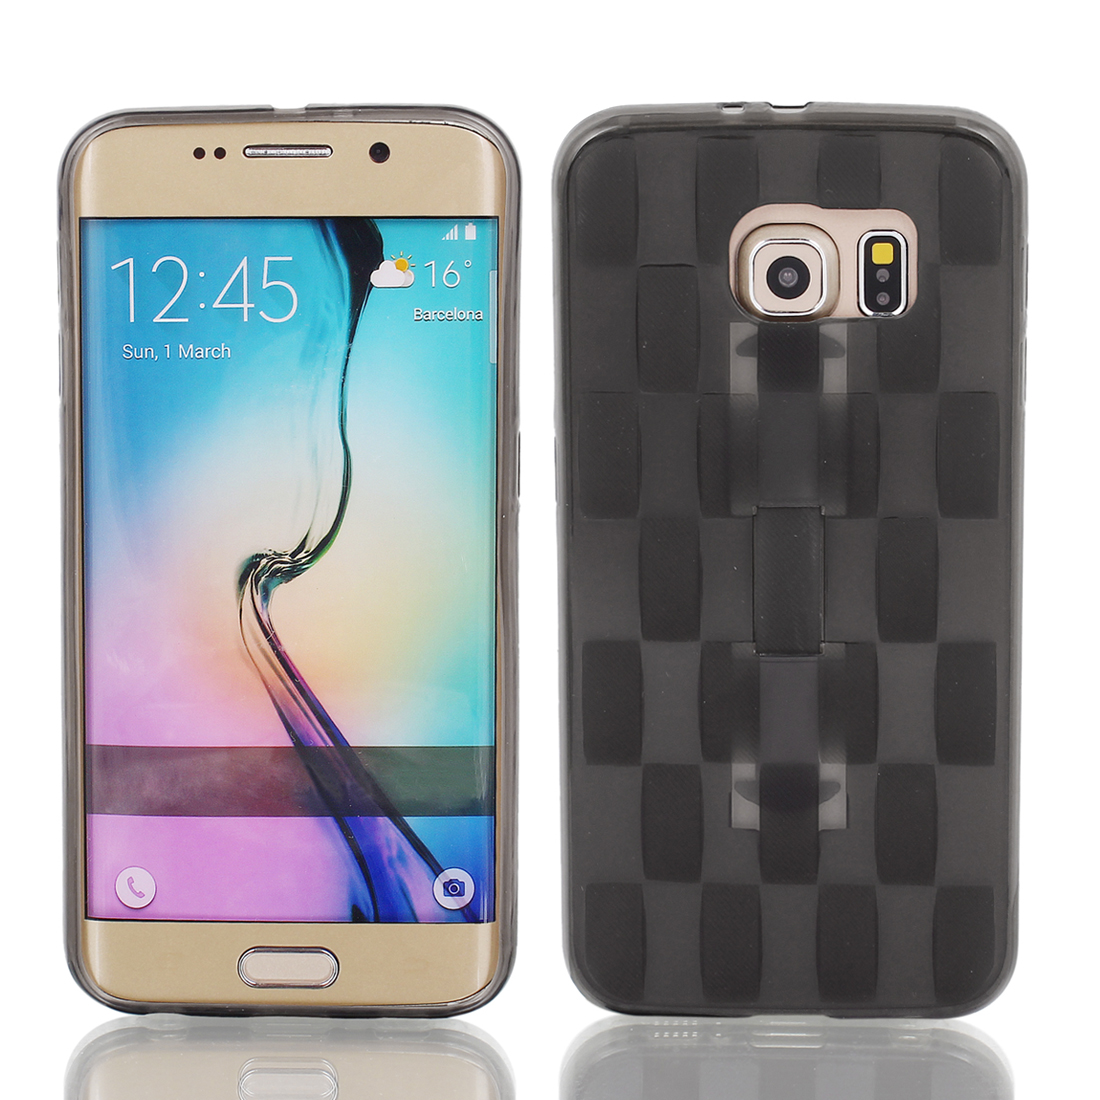 TPU Ultra-thin Rugged Hybrid Skin Case Cover Black for S6/G9200